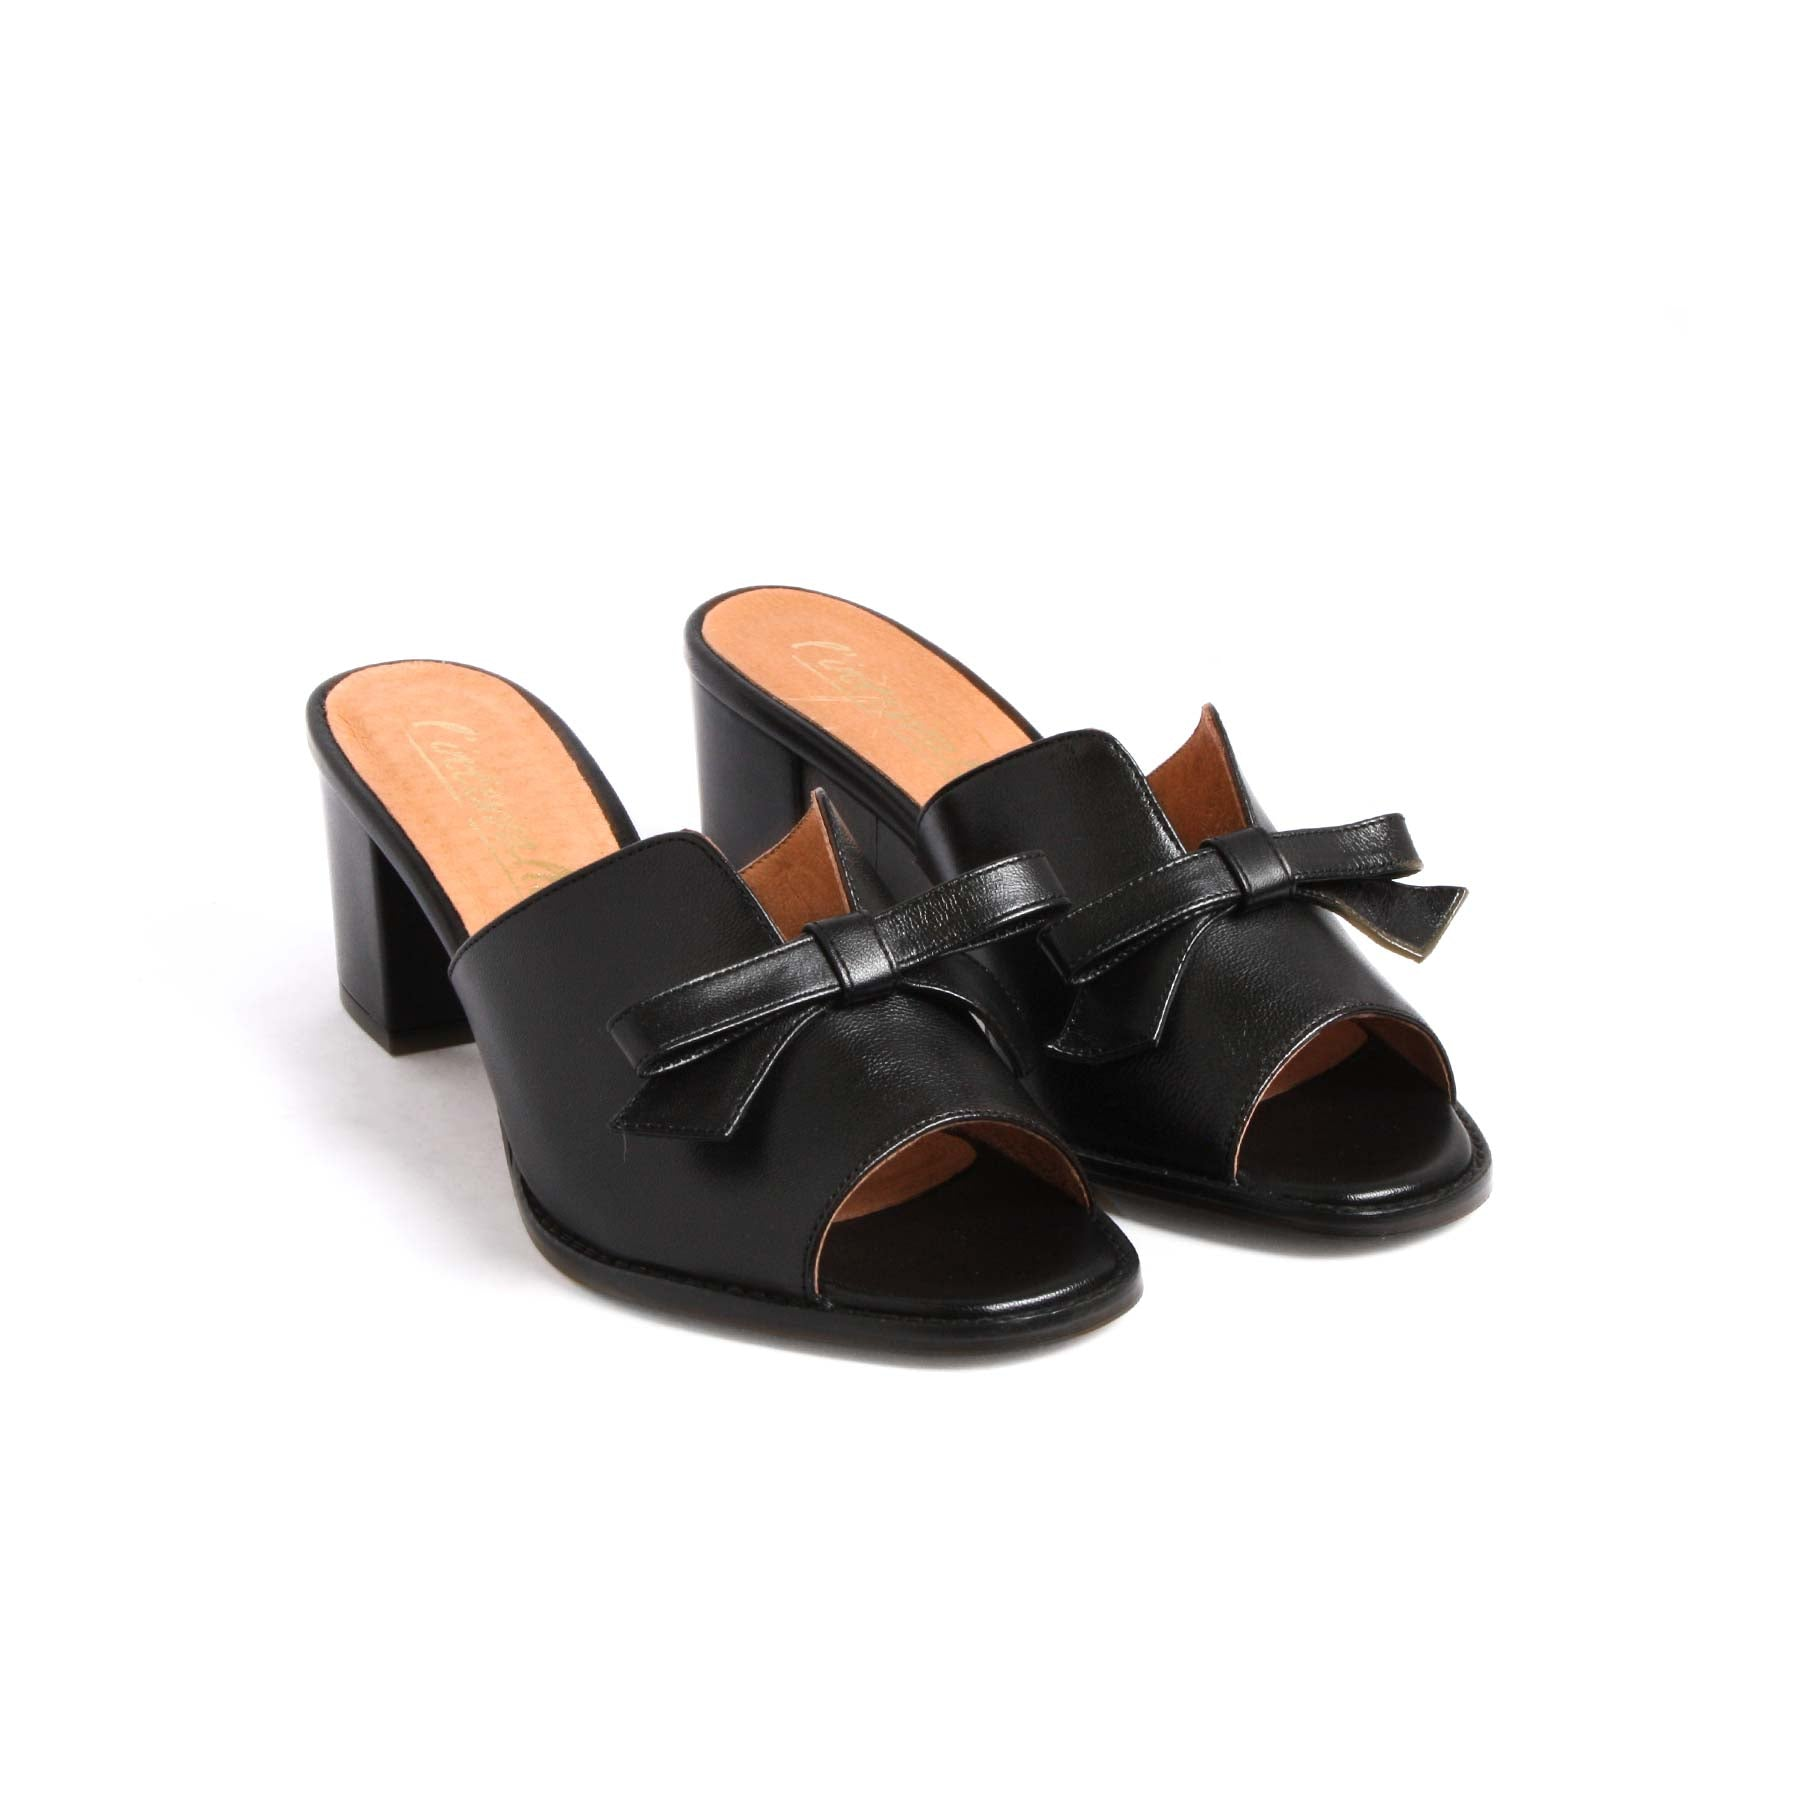 Mules, Fasmin Black Leather - Lintervalle shoes for woman